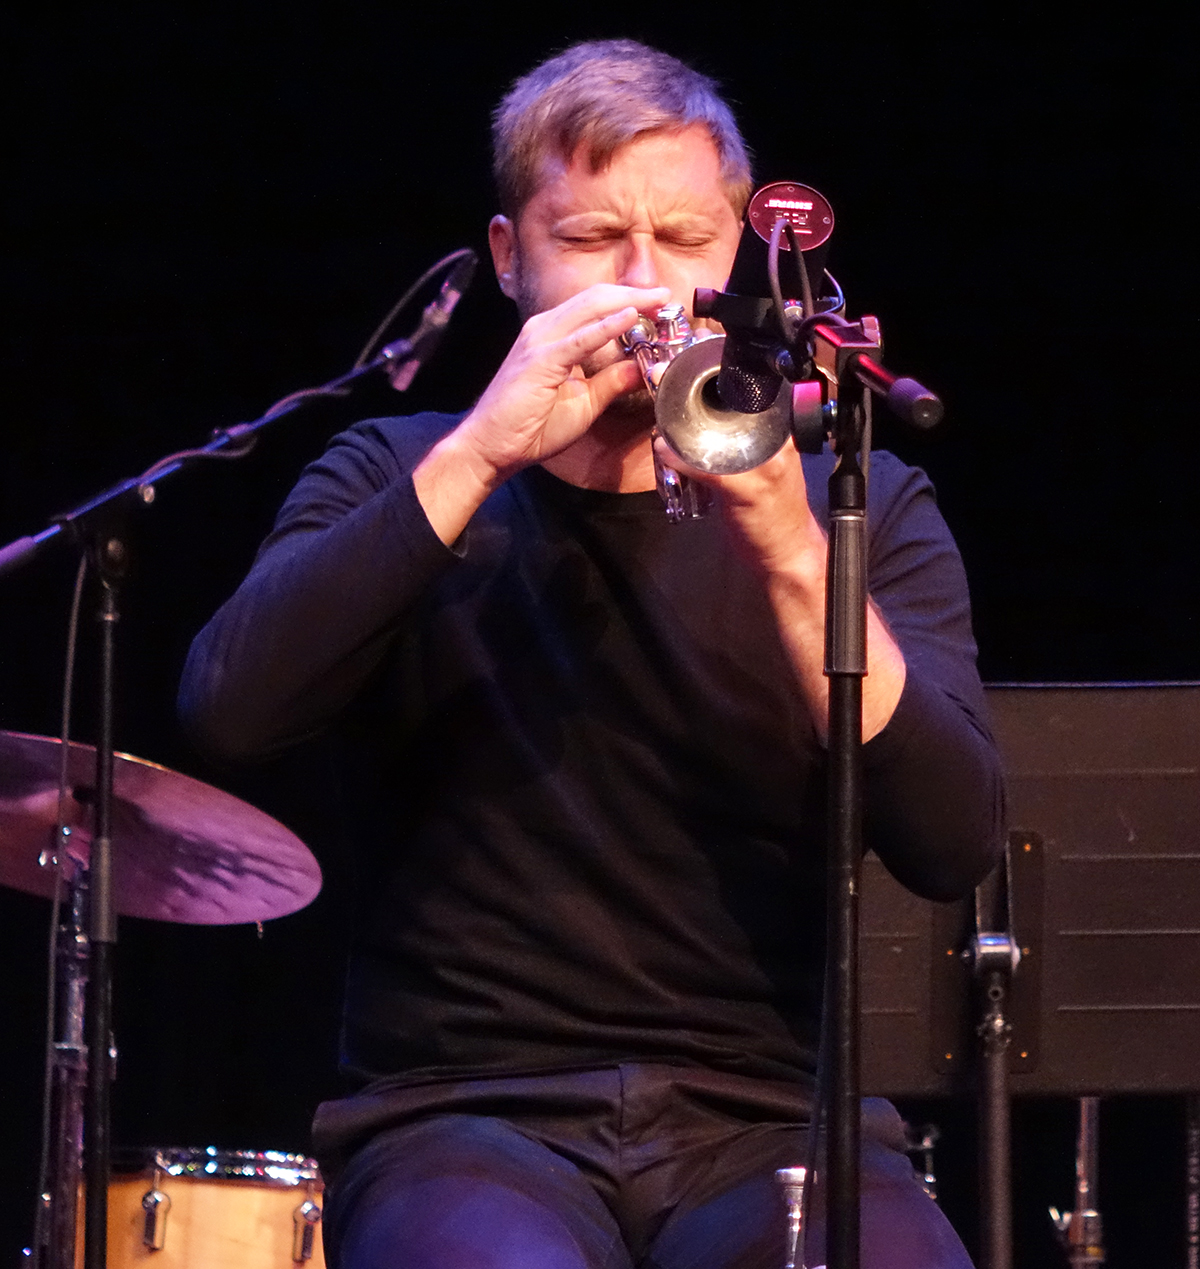 Peter Evans at Guelph Jazz Festival 2015